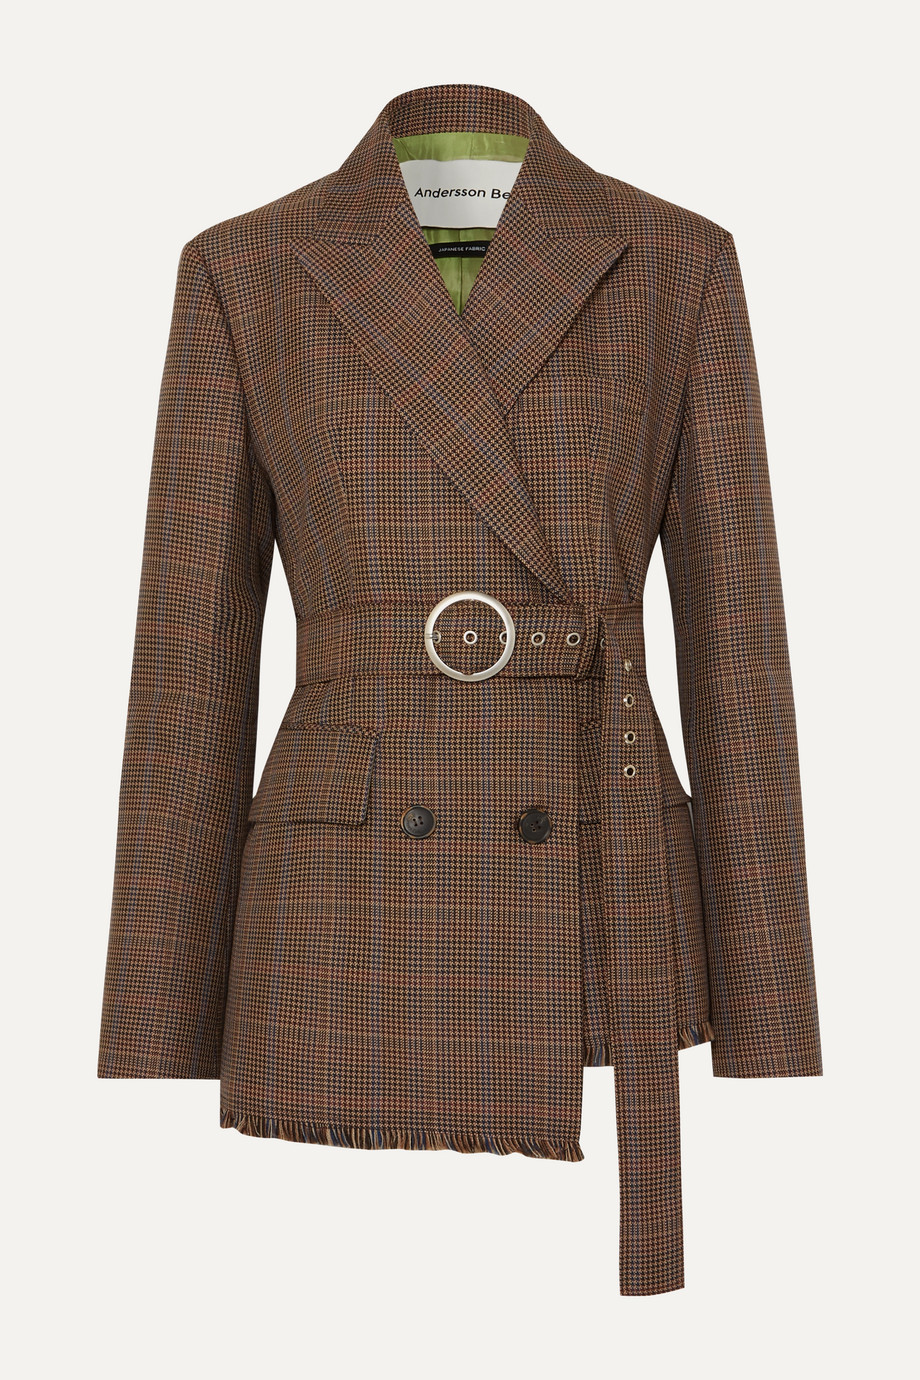 Andersson Bell Oversized belted checked wool-blend tweed blazer